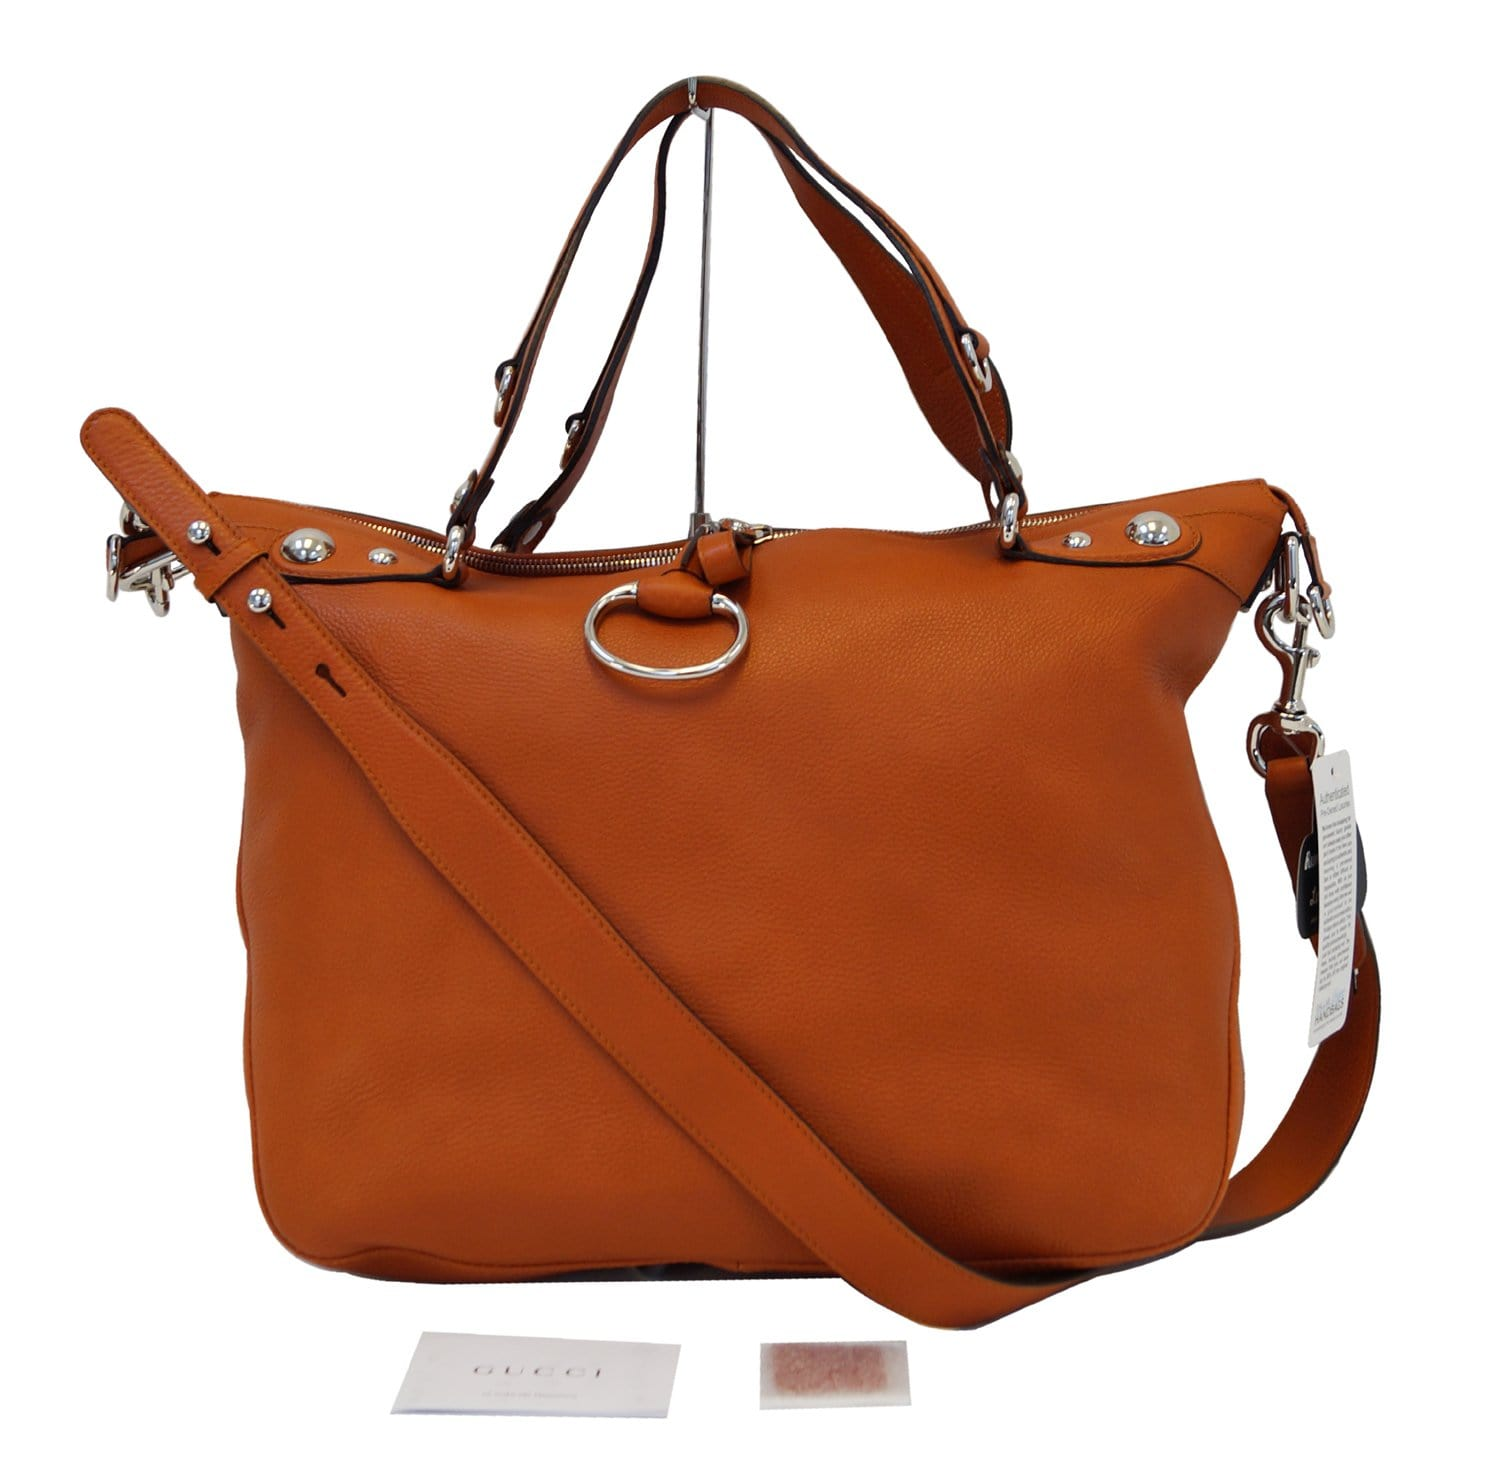 1d09f8be63b1 Authentic GUCCI Orange Pebbled Leather Icon Bit Large Hobo Bag TT1367